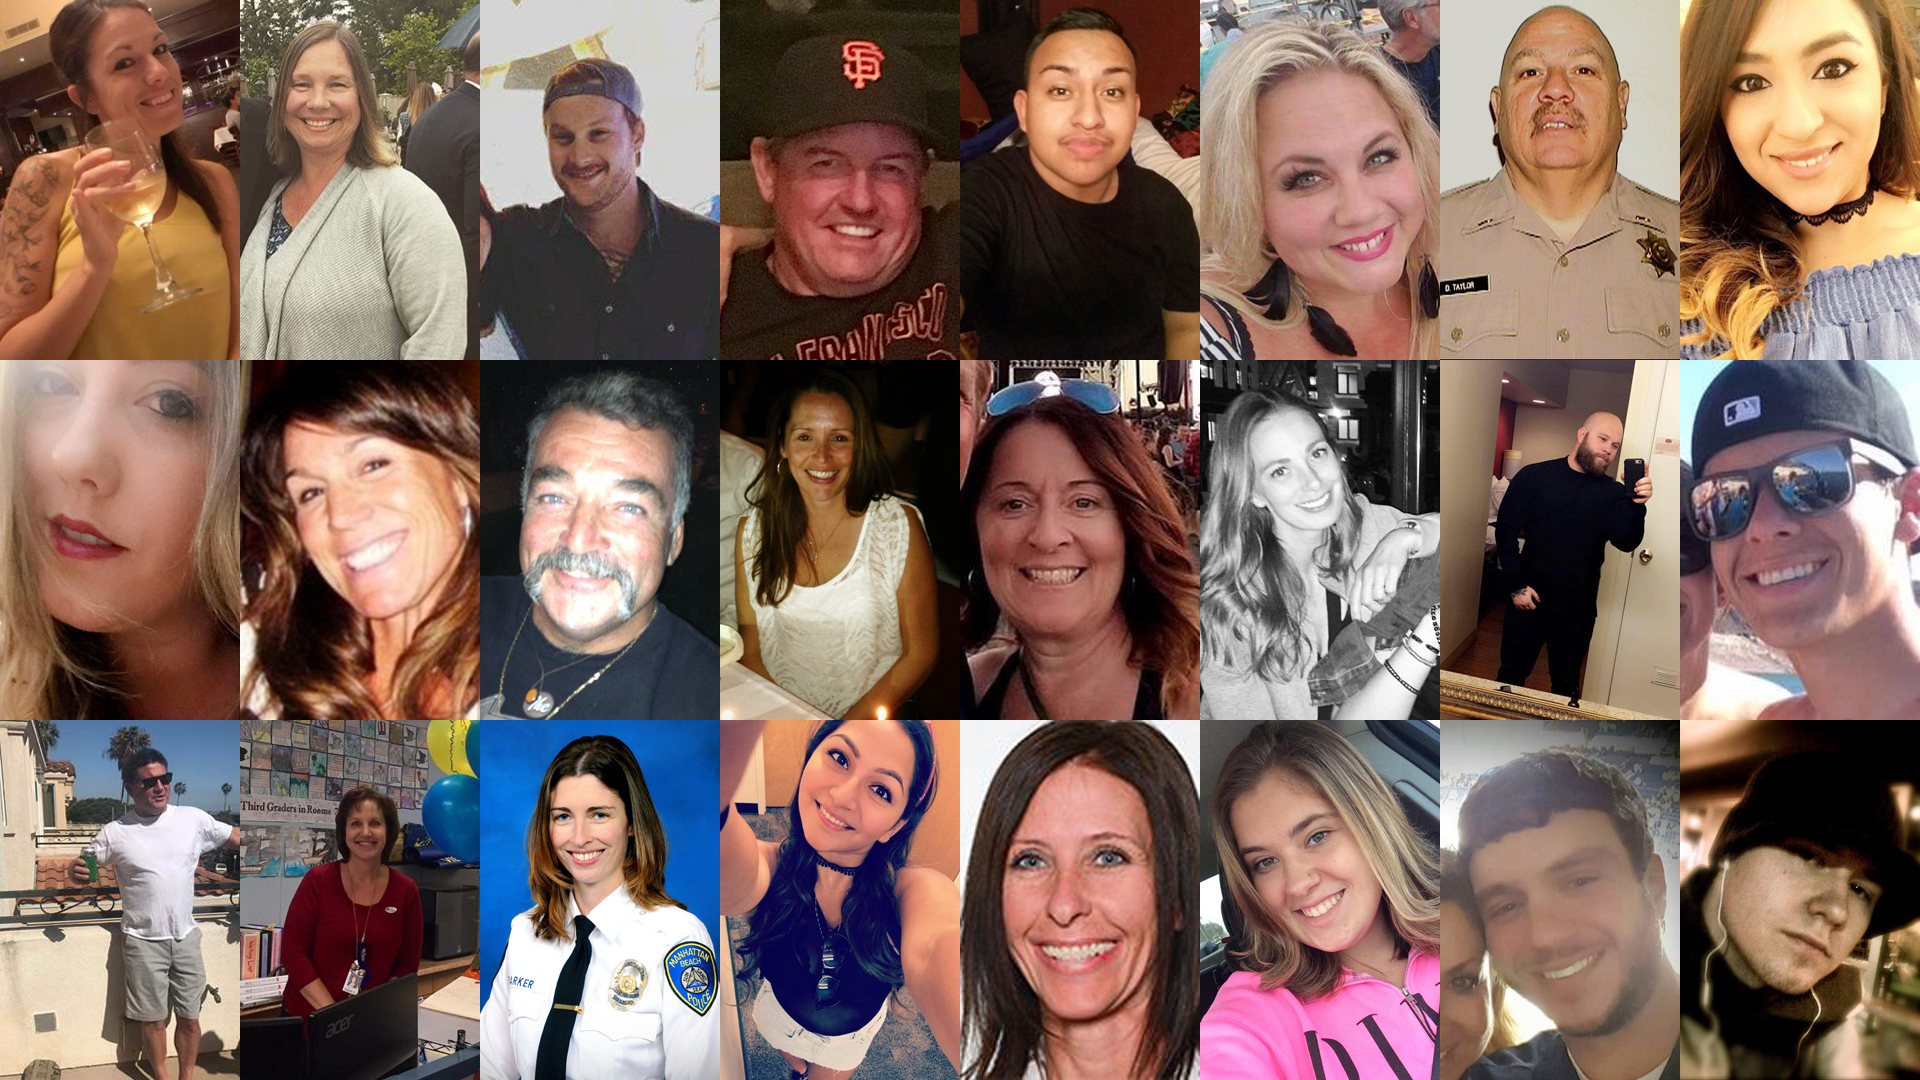 "These are the images of 24 of the 58 victims of the Las Vegas mass shooting. Top: Hannah Ahlers, Lisa Patterson, Jordan McIldoon, Kurt von Tillow, Erick Silva, Heather Warino Alvarado, Derrick Taylor and Melissa Ramirez. Middle: Calla Medig, Stacee Etcheber, John Phippin, Candice Bower, Denise Salmon Burditus, Tara Roe, Christopher Roybal and Quinton Robbins. Bottom: Jack Beaton, Susan Smith, Rachael Parker, Angela ""Angie"" Gomez, Neysa Tonks, Bailey Schweitzer, Sonny Melton and Cameron Robinson."